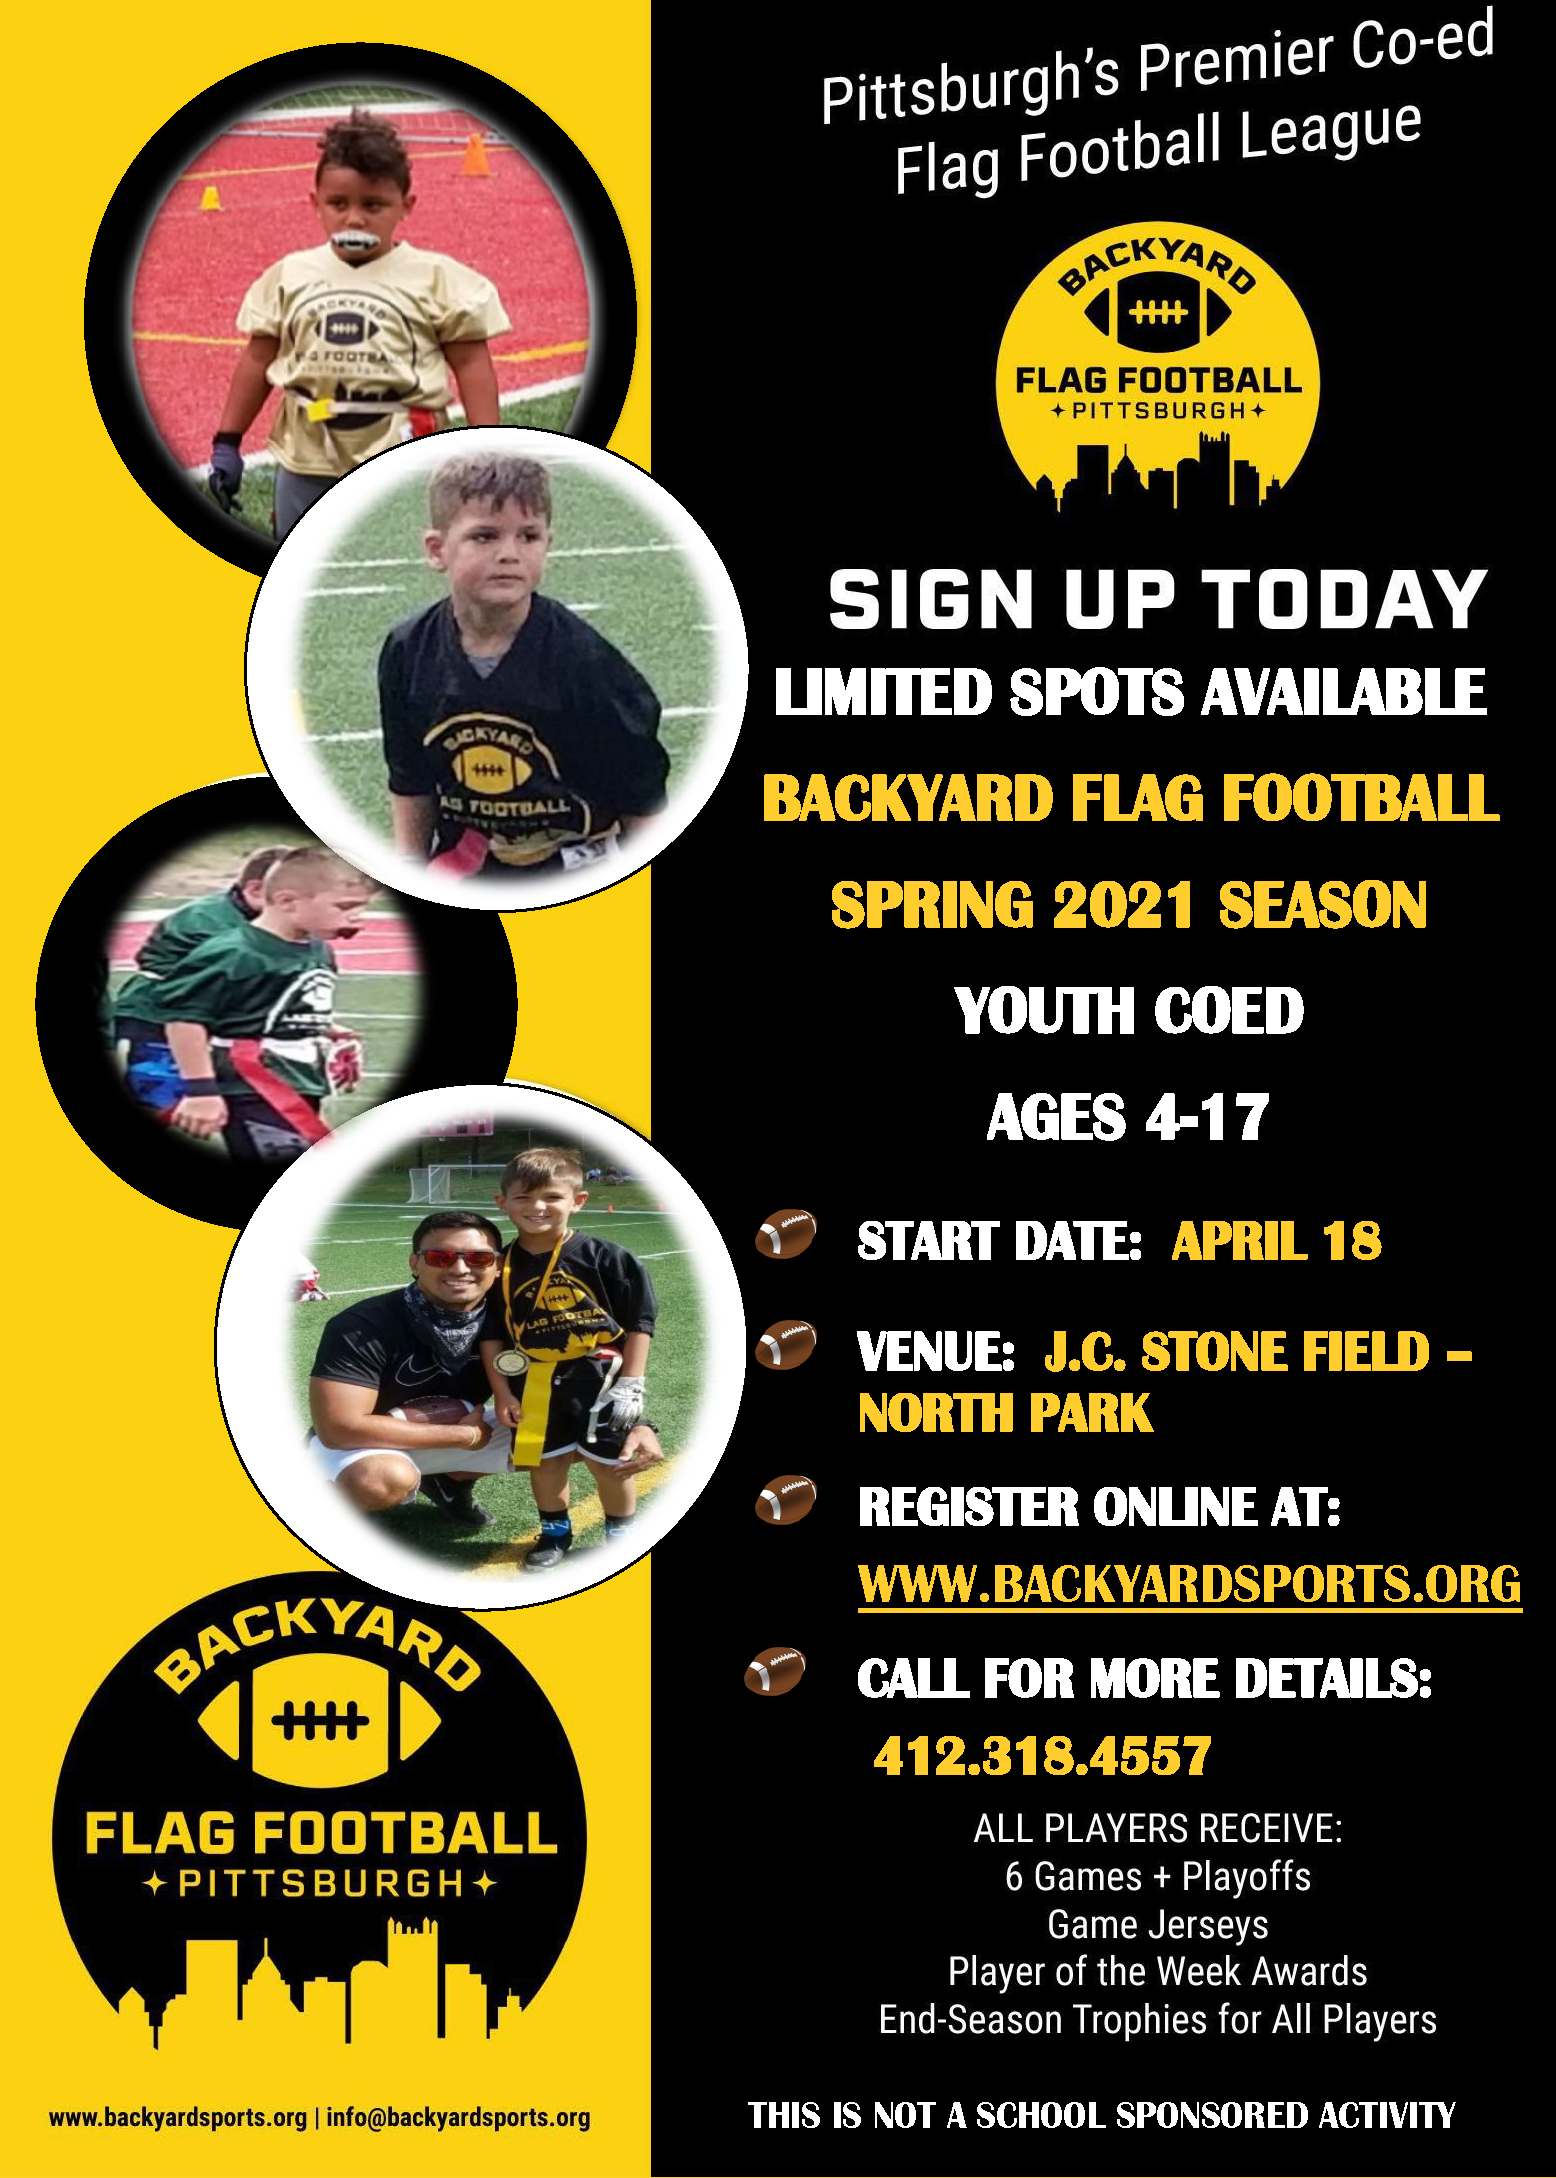 The Spring Season registration is here for youth coed flag football! Sign up now for there are limited spots available!